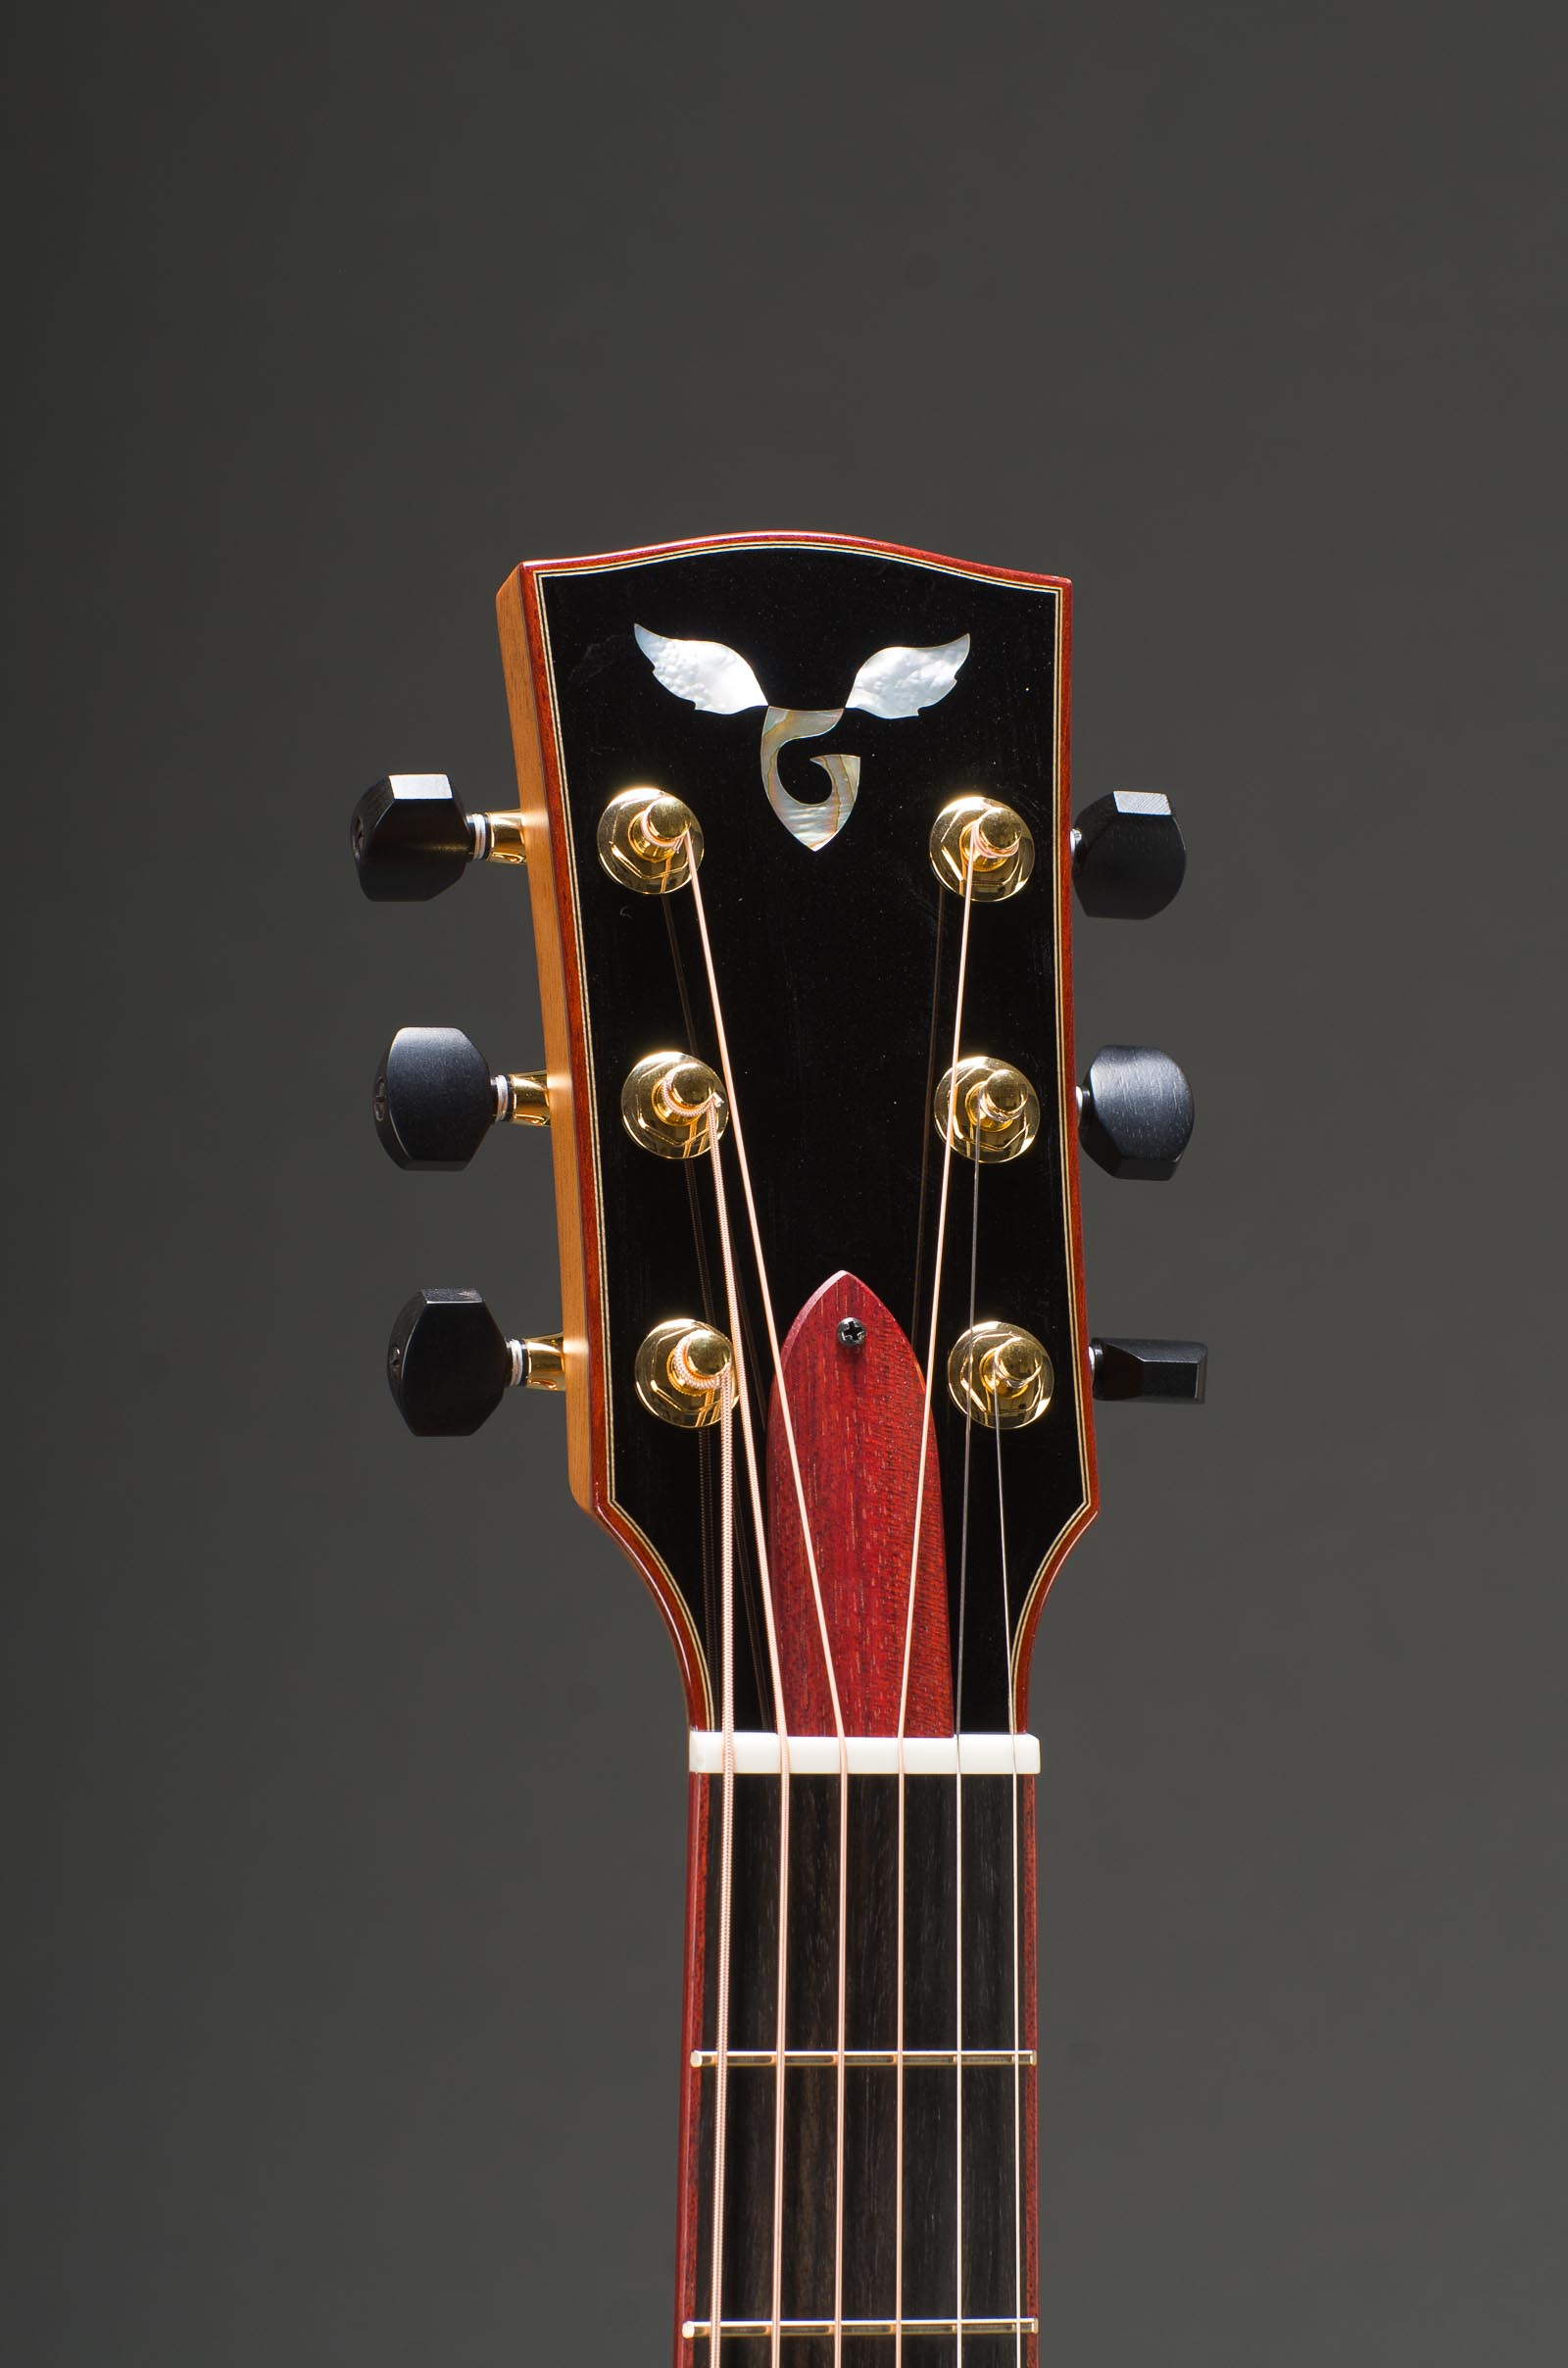 14-Fret Parlor - All Ribbon Mahogany Including Top, Fancy Abalone Rosette, & Bloodwood Binding - Including Matching Fretboard Option, Fancy G - MOP Wings, Gold Gotoh 510 Mini Tuners with Ebony Buttons